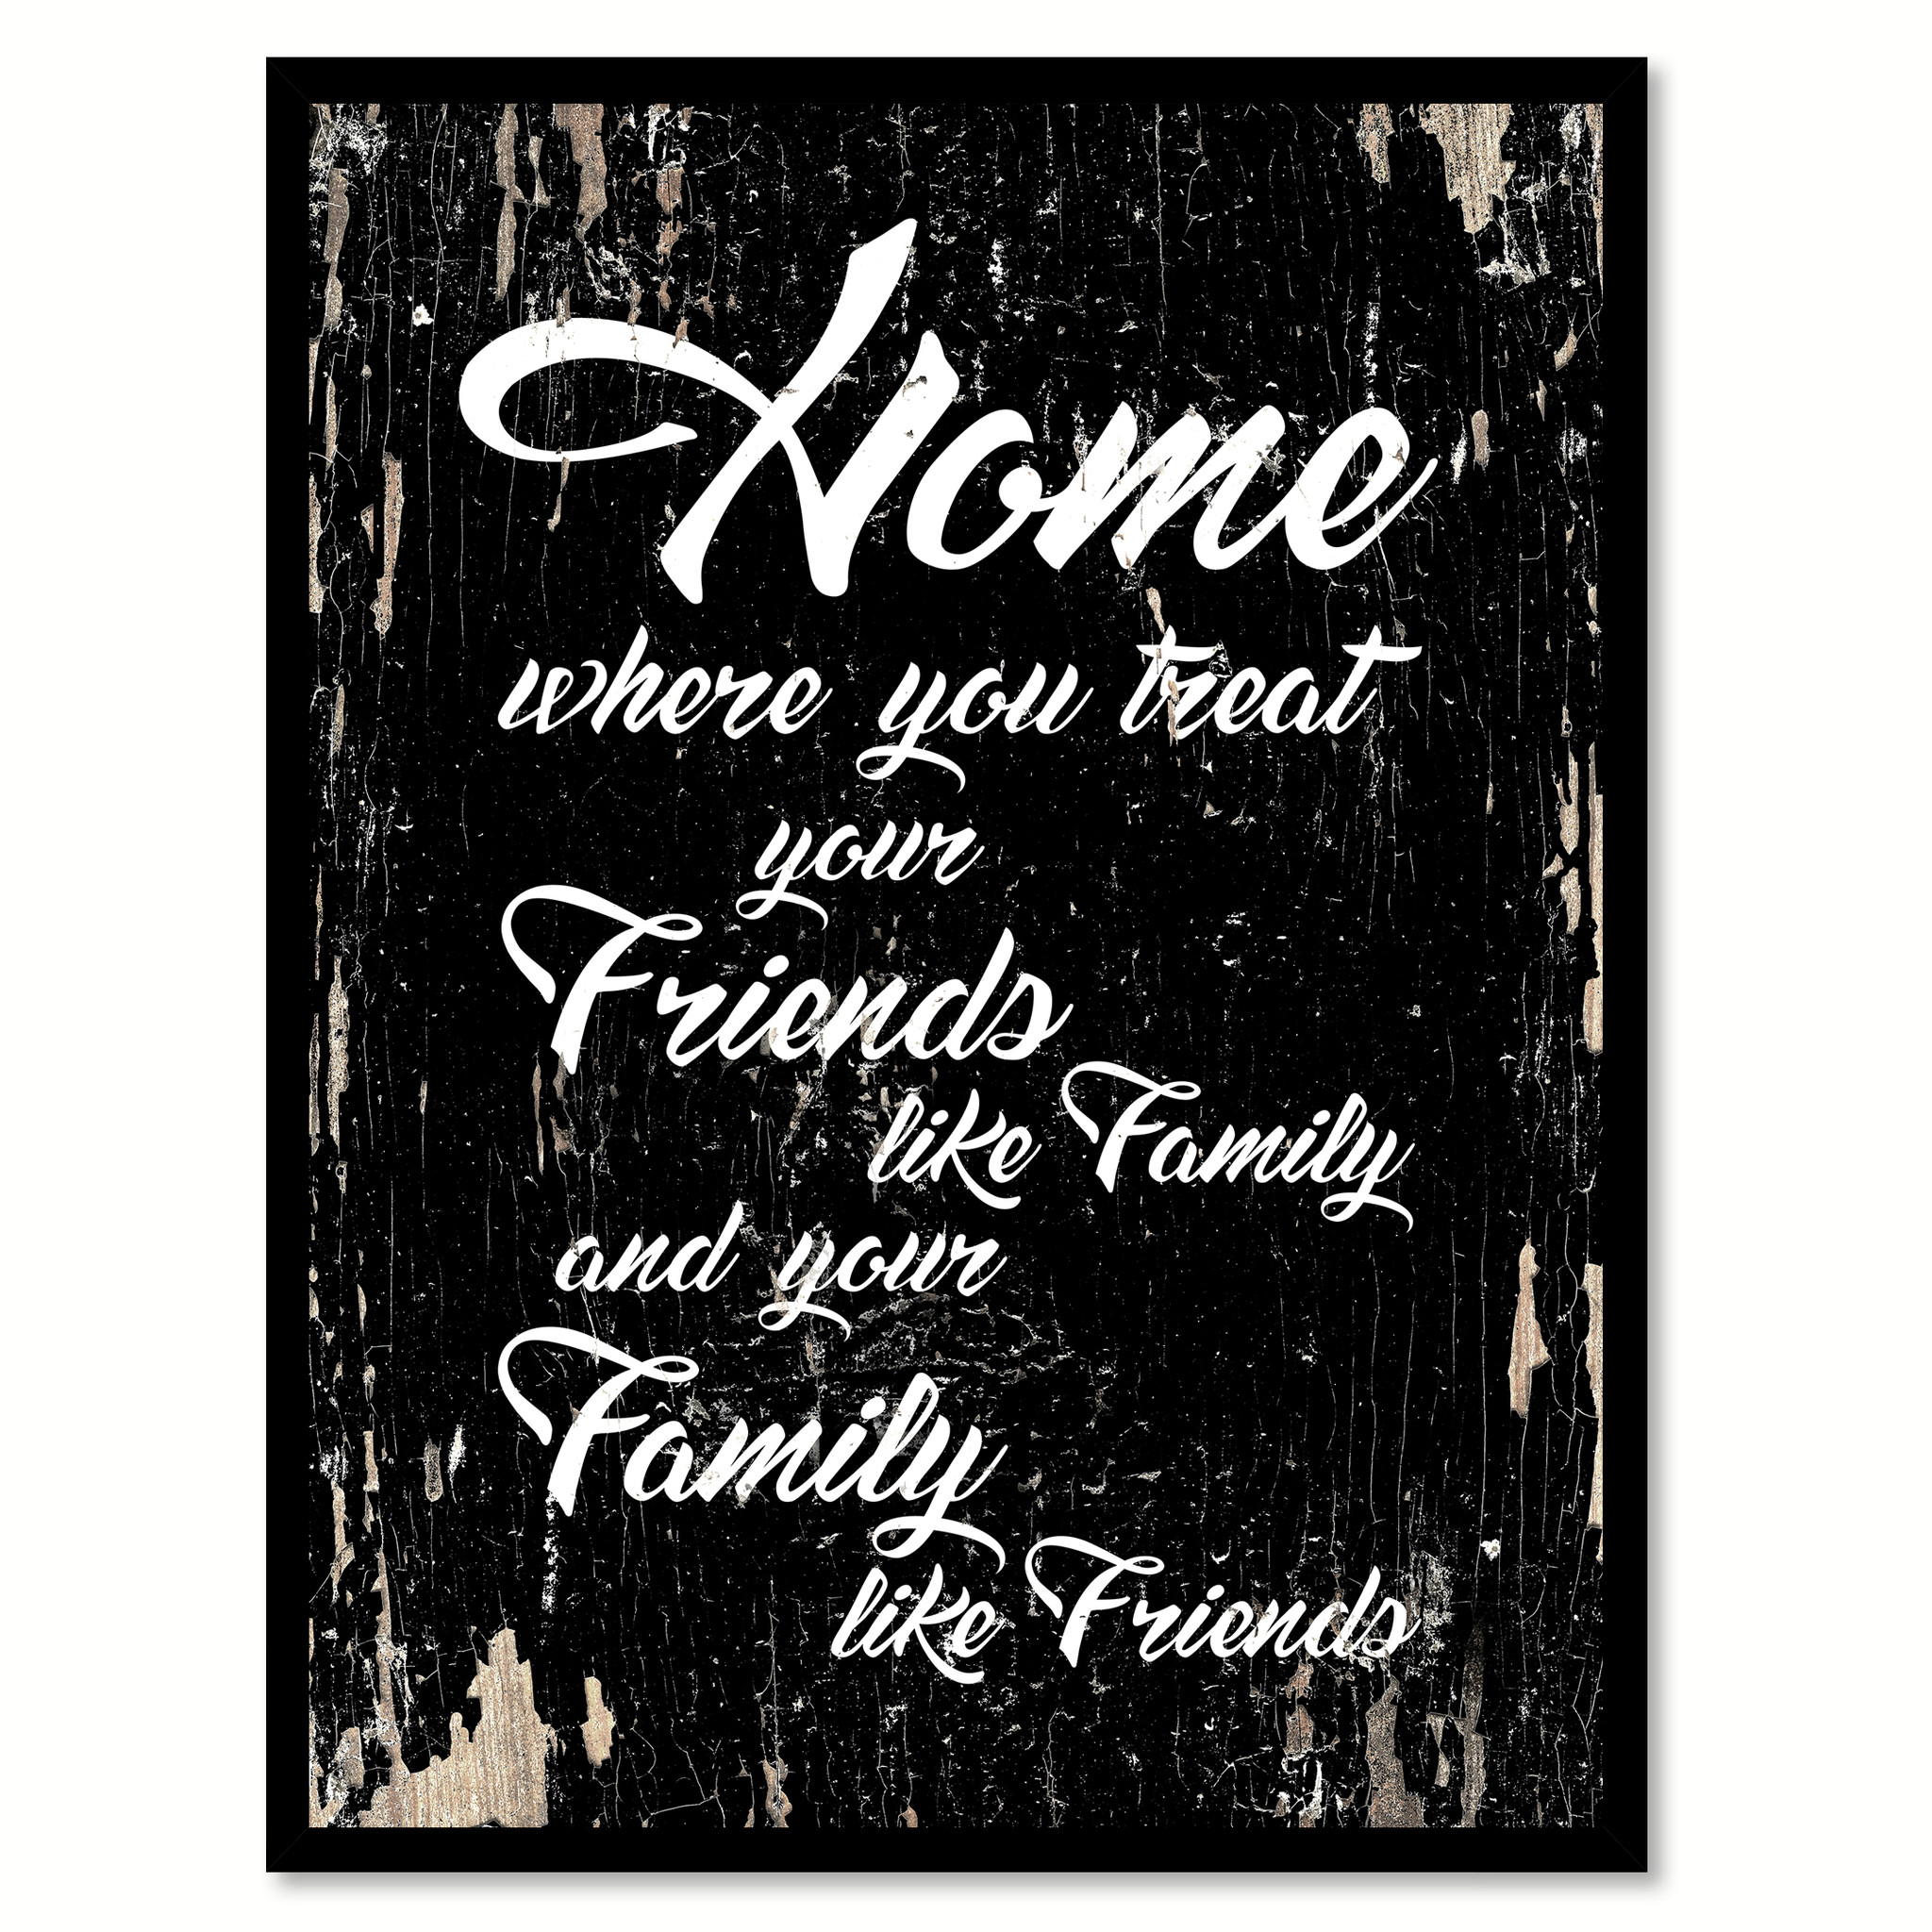 "Home Where You Treat Your Friends Like Family Quote Saying Canvas Print with Picture Frame Home Decor Wall Art Gift Ideas 112037 - 7""x9\"""